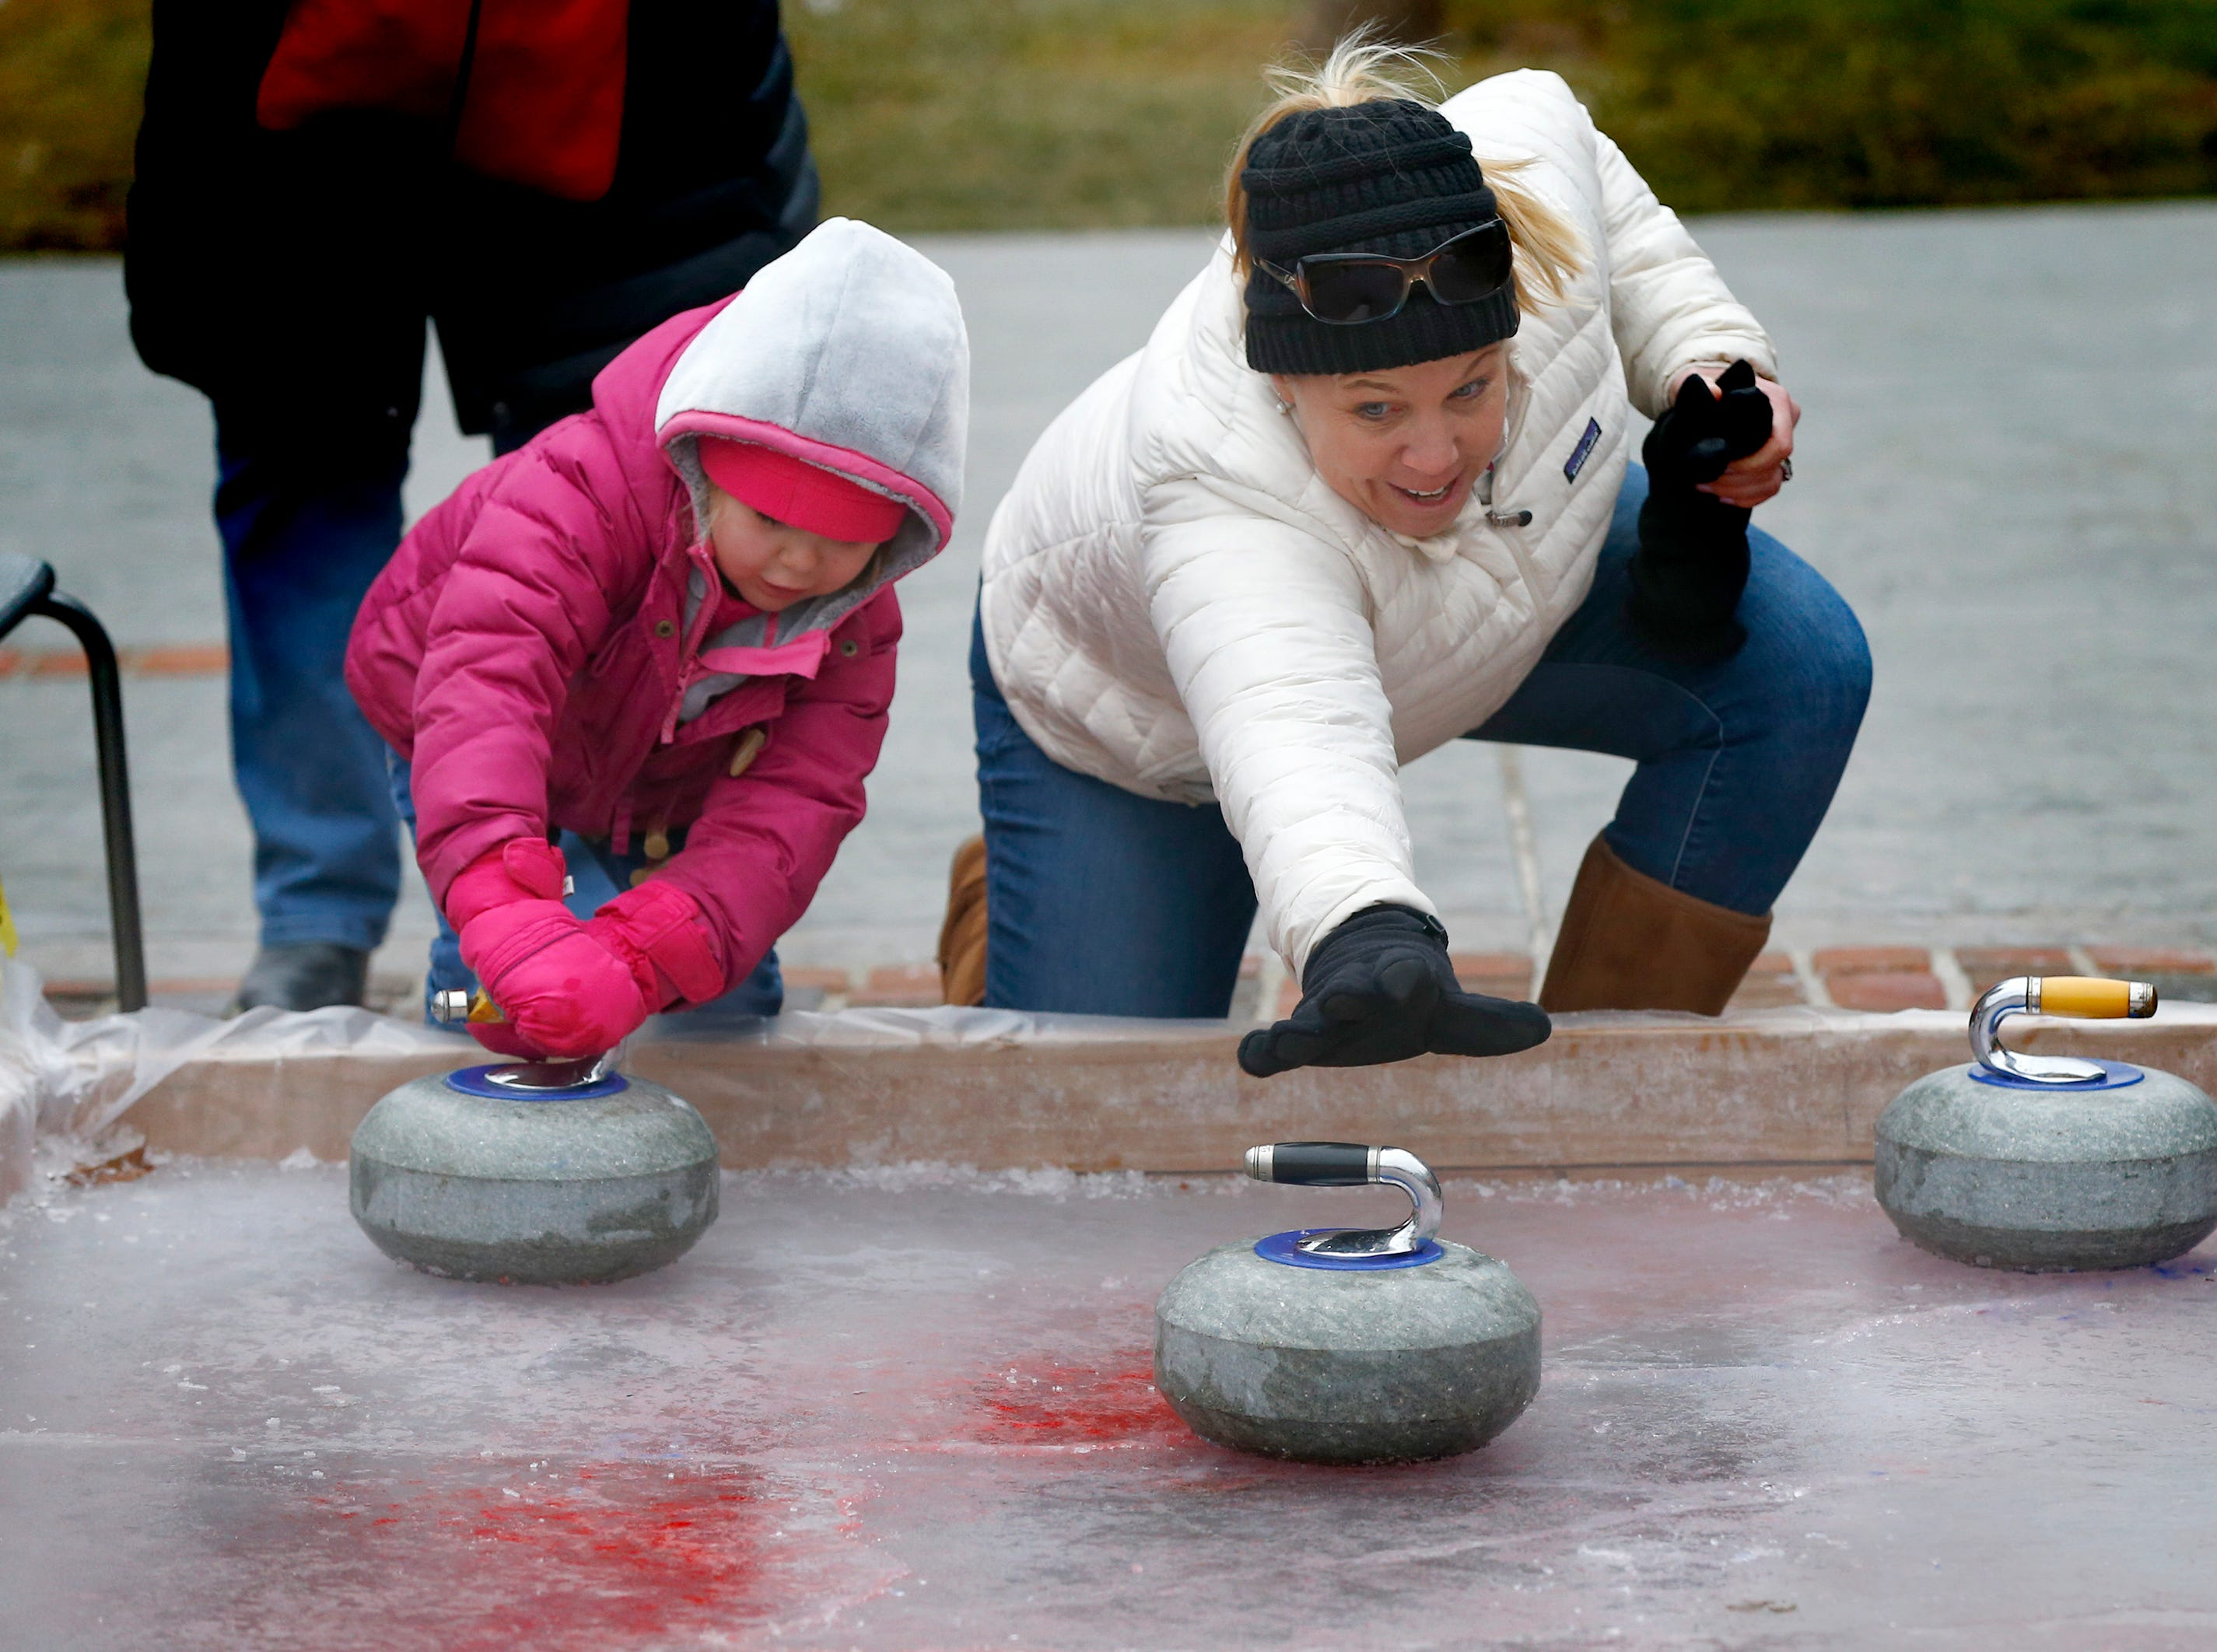 Abigail, 5, and Emlie Veinot try sliding stones on a curling rink run by the Kettle Moraine Curling Club in front of Revere's Tavern during the first DelaFreeze on Jan. 12. The event featured ice carvers and other activities throughout downtown Delafield.